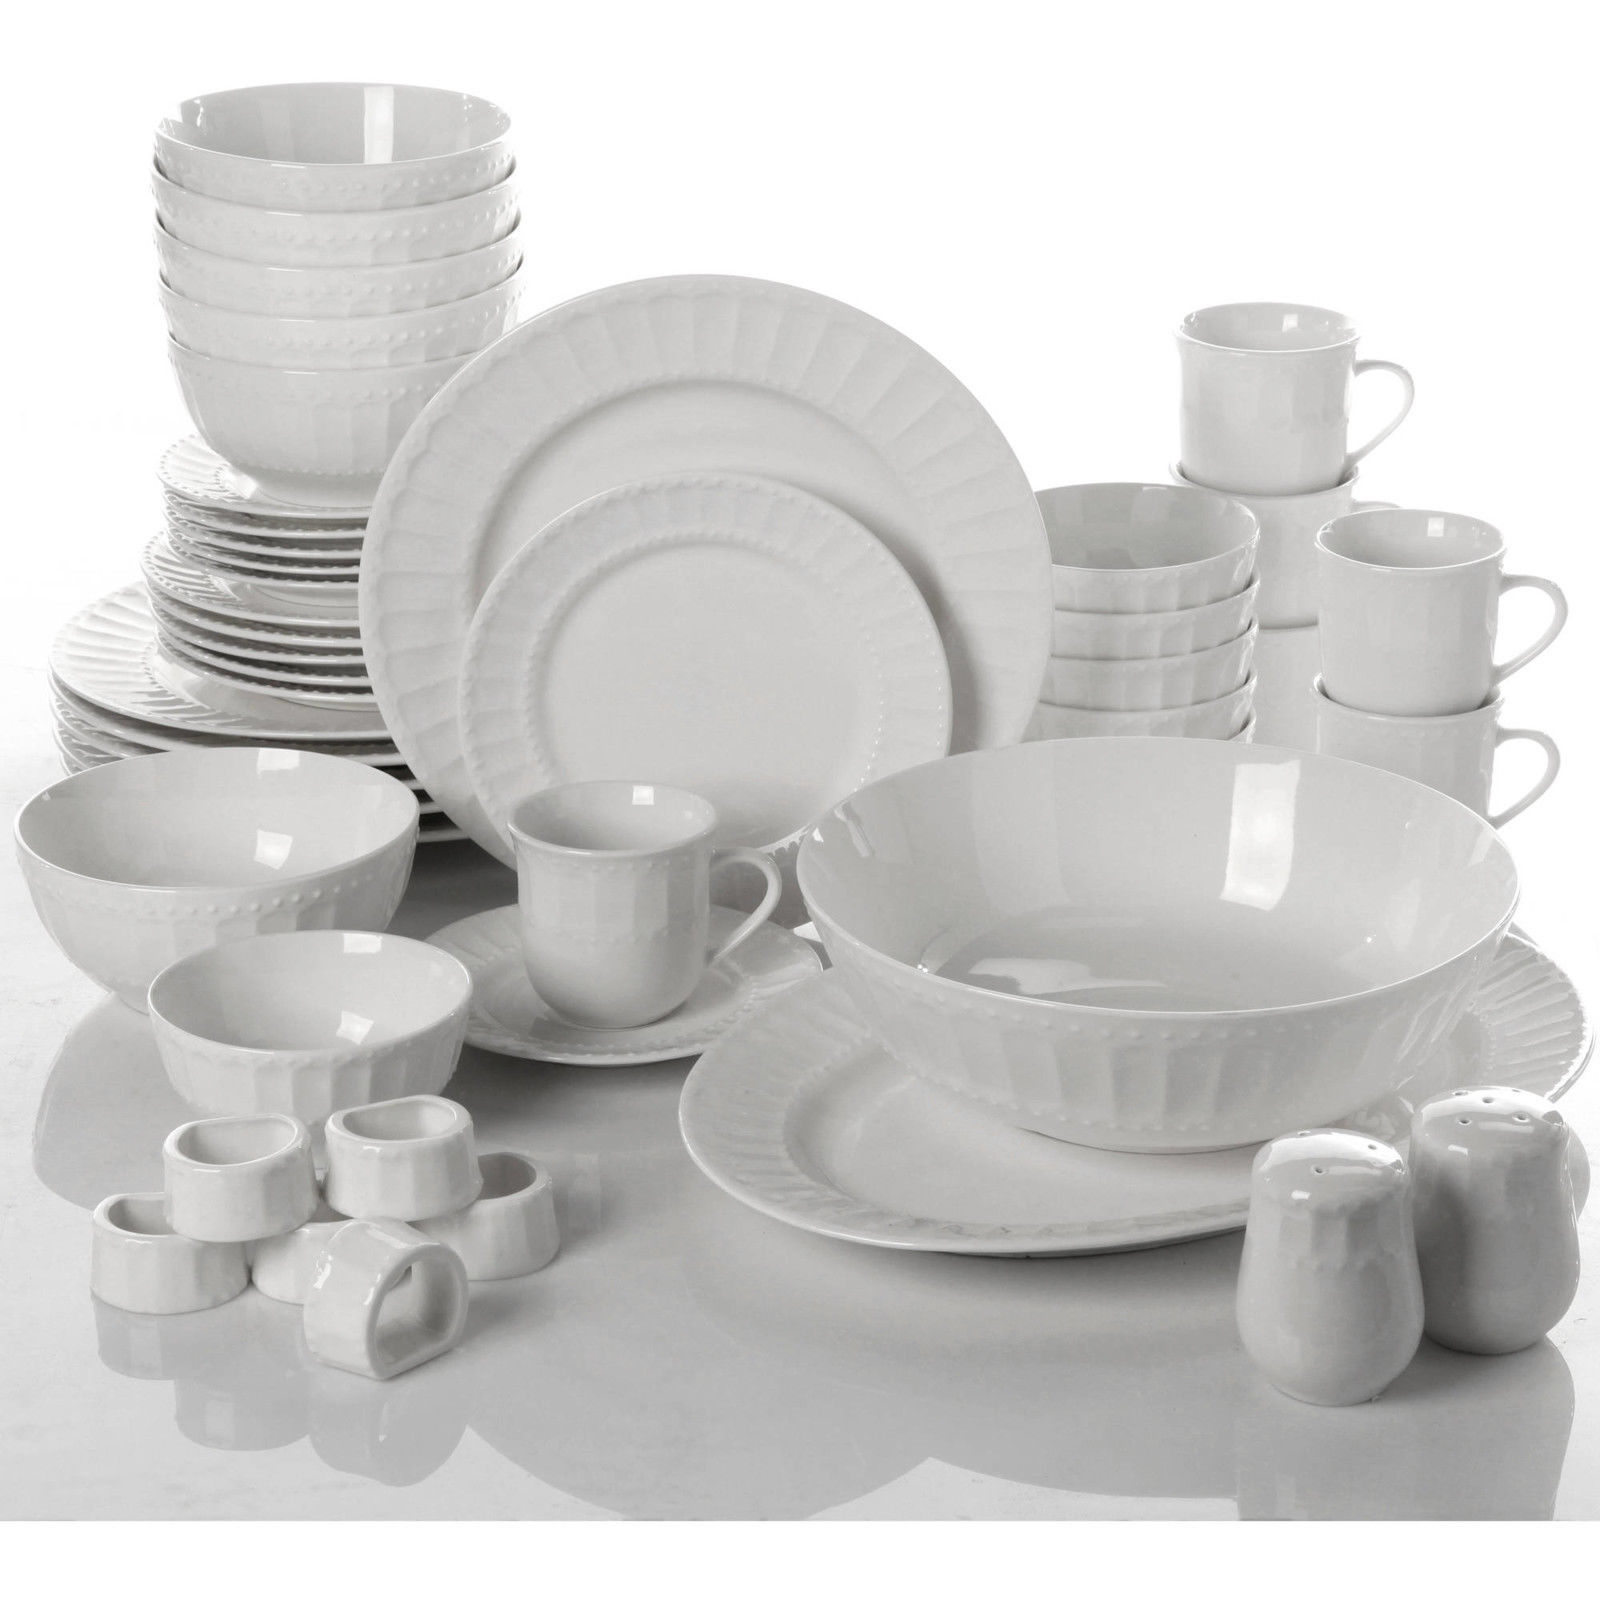 46 Piece Dinnerware Set Plates Dishes Bowls and 50 similar items